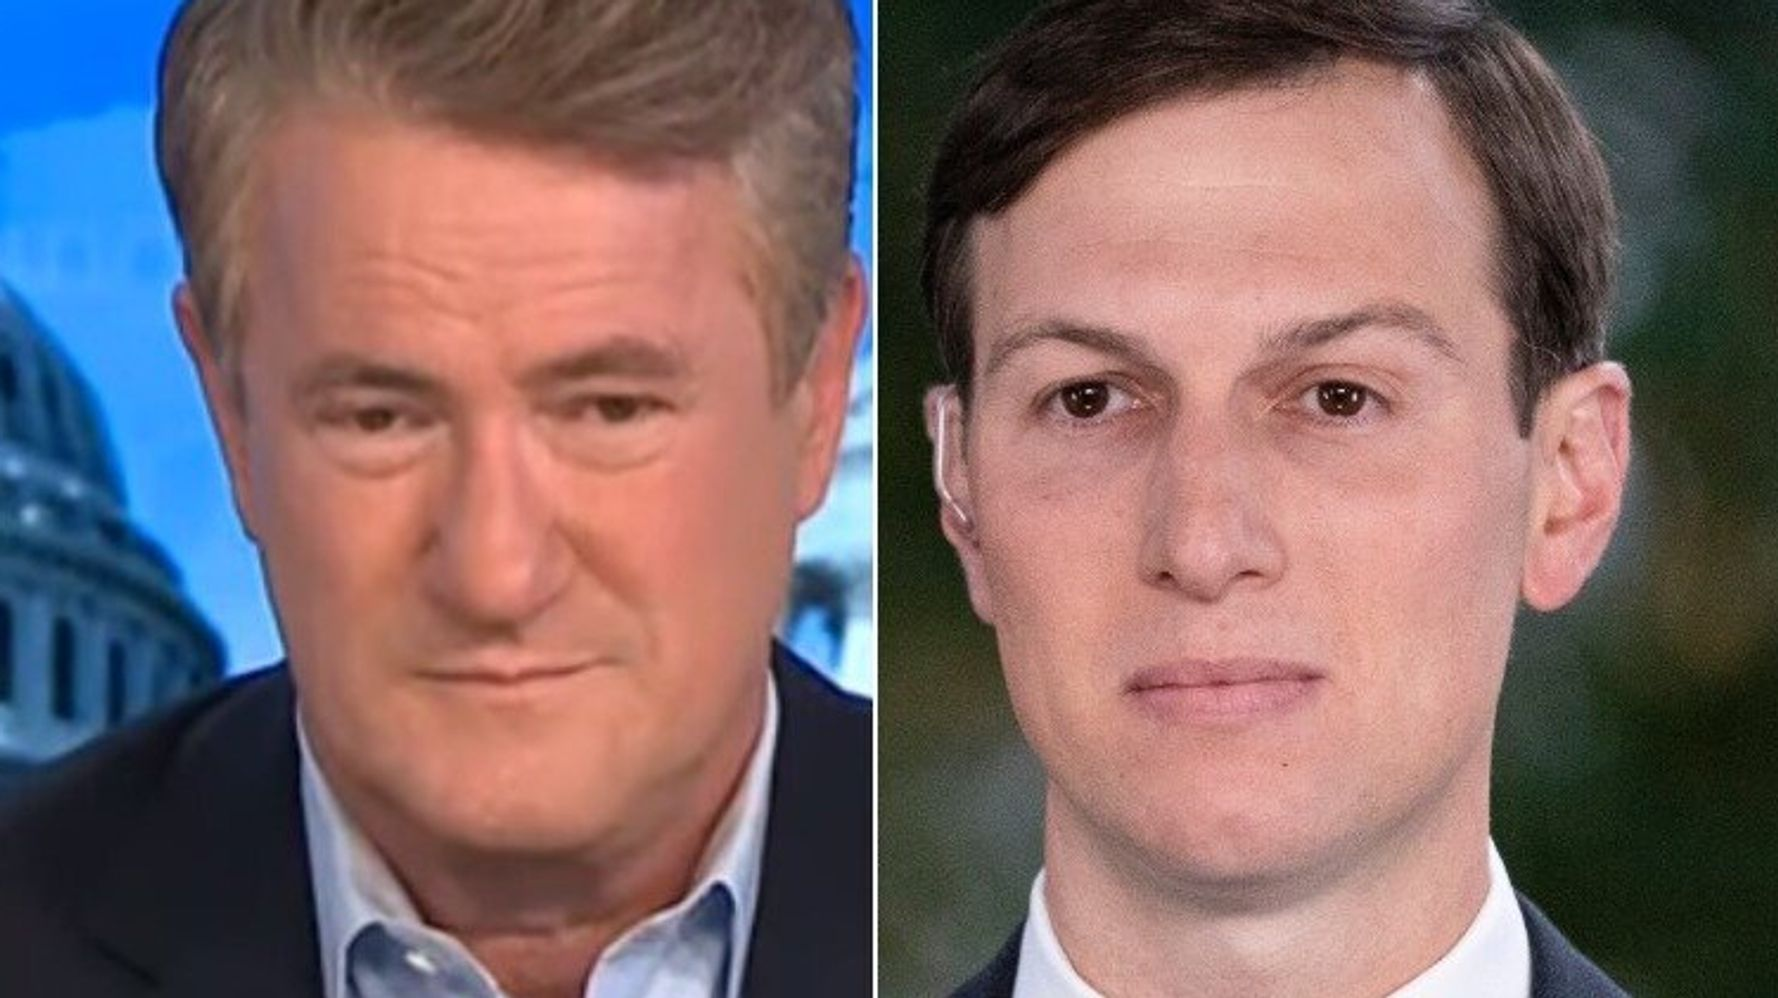 Joe Scarborough Spots 'Perry Mason' Moment Of The Trump-Kushner COVID-19 Debacle